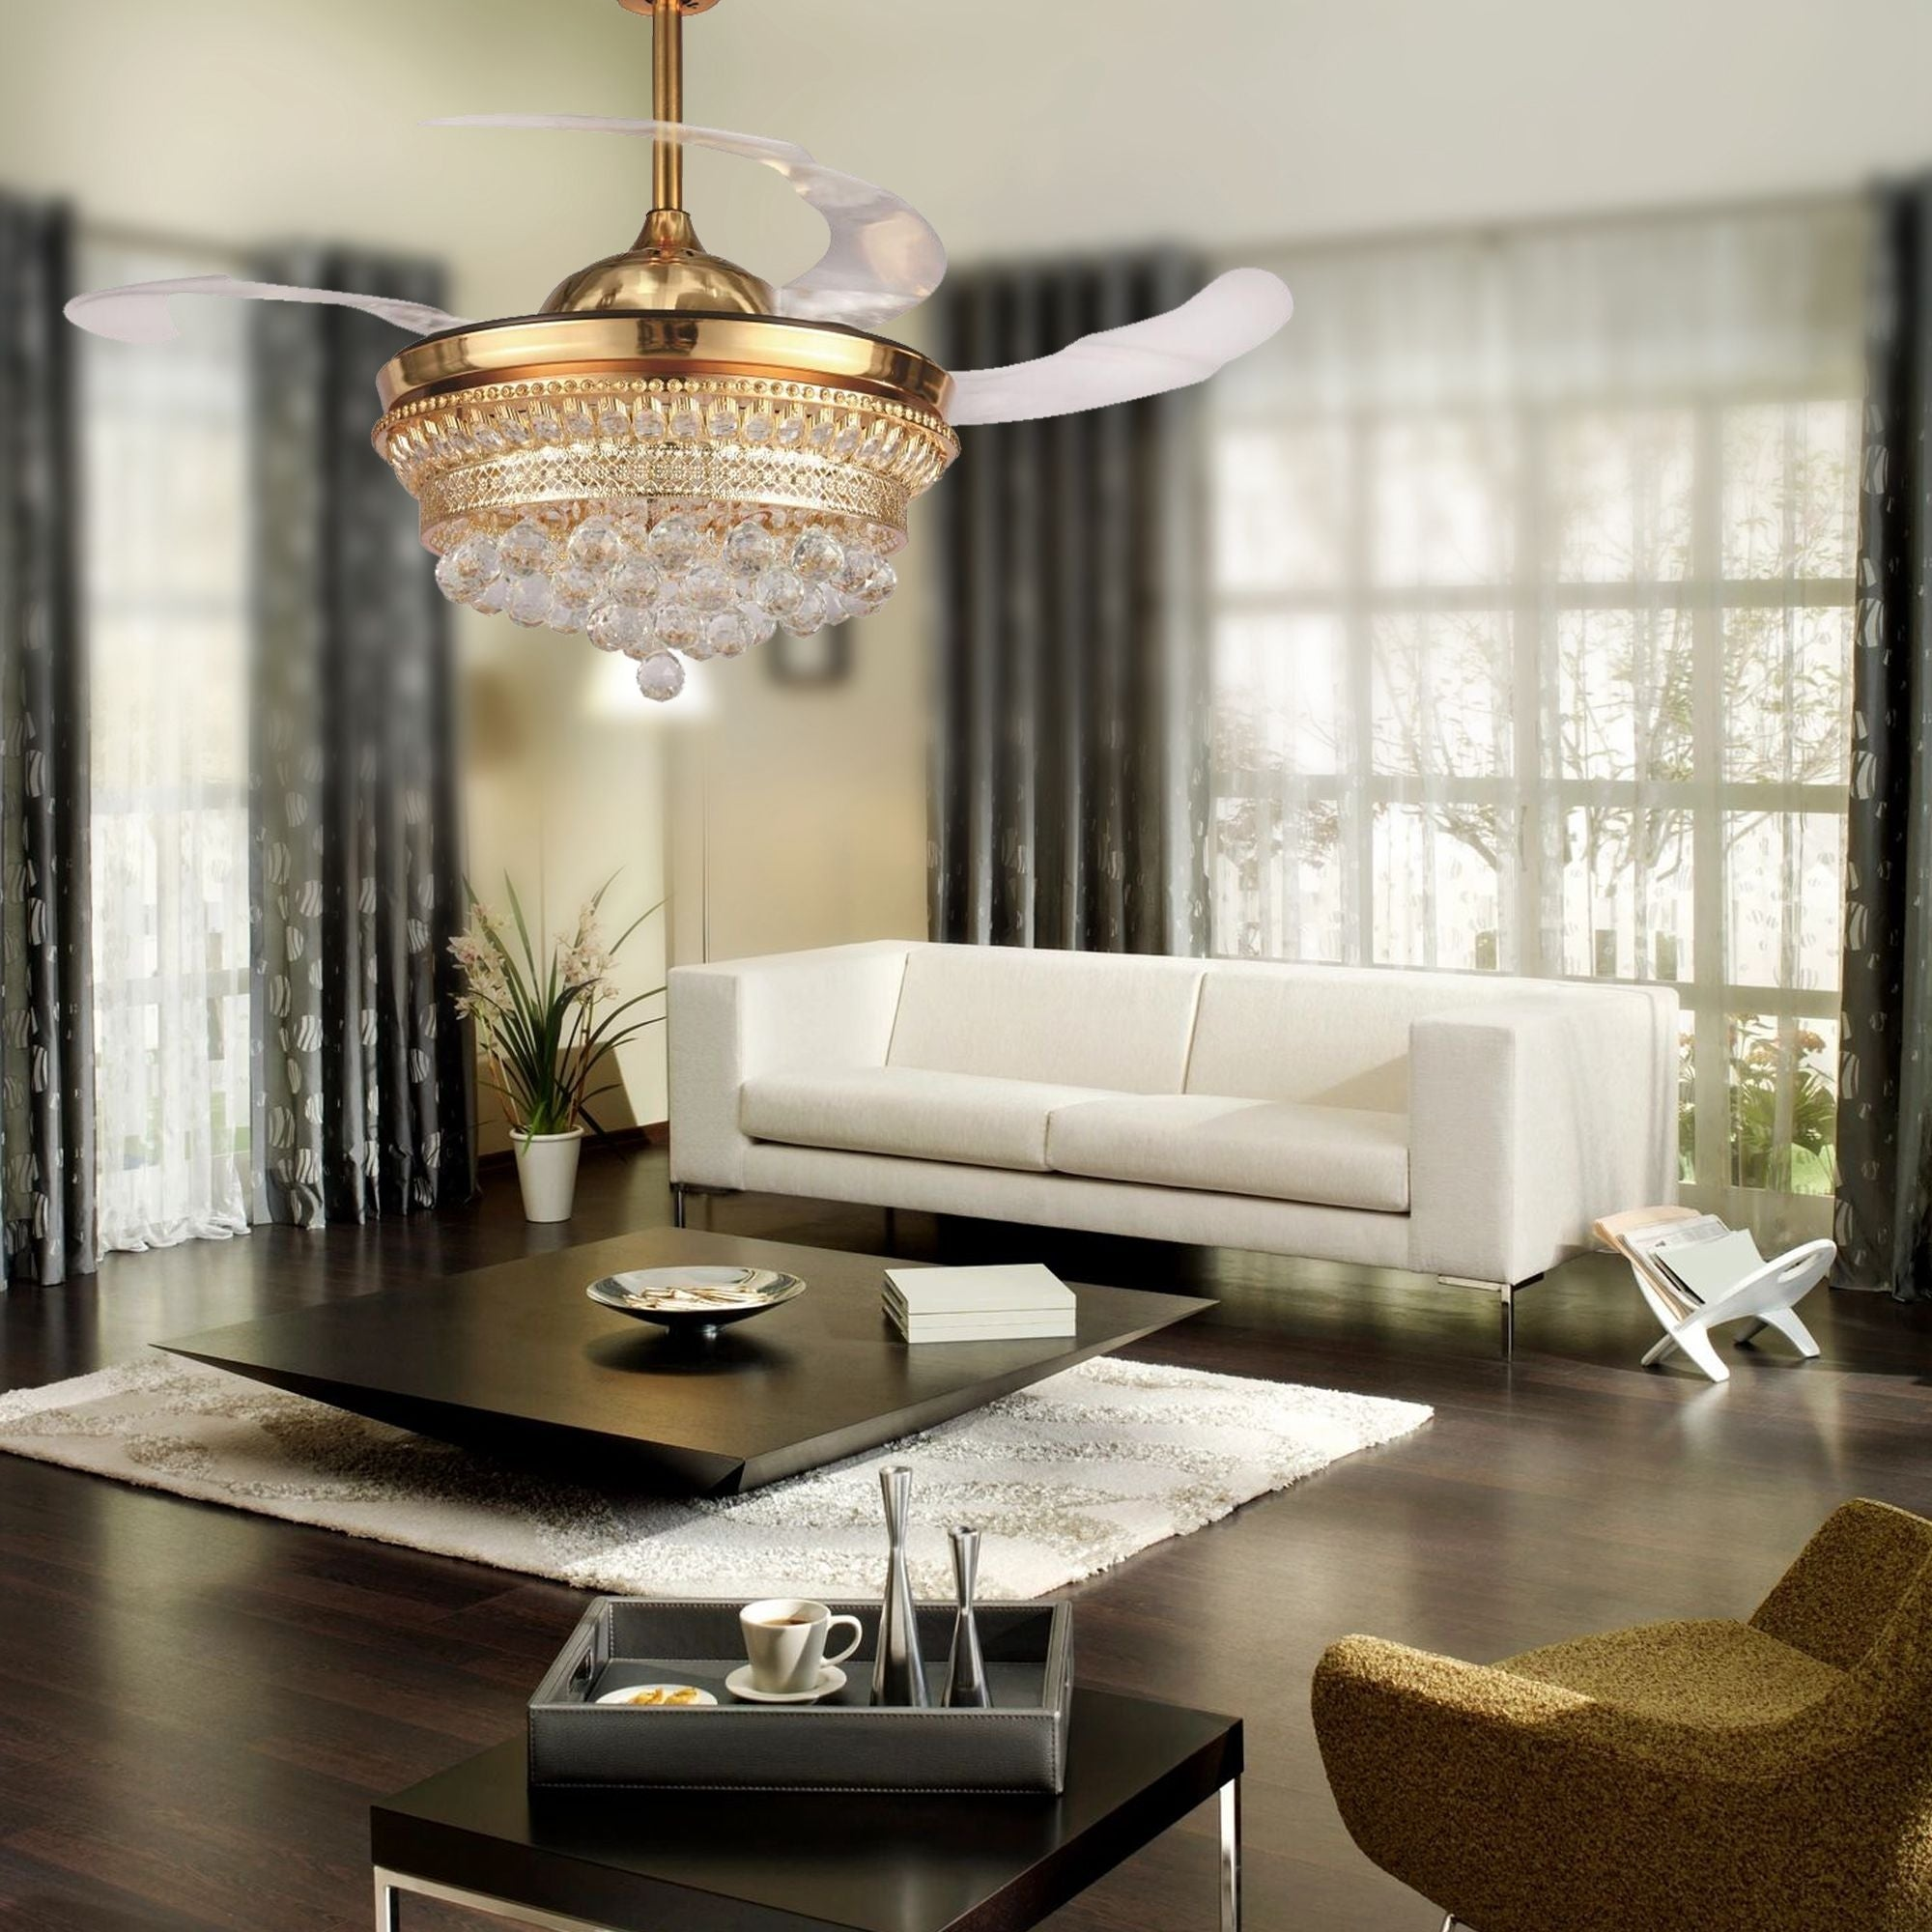 a size necessities lighting blades airflow design to how room livings pin choose ceiling living fan